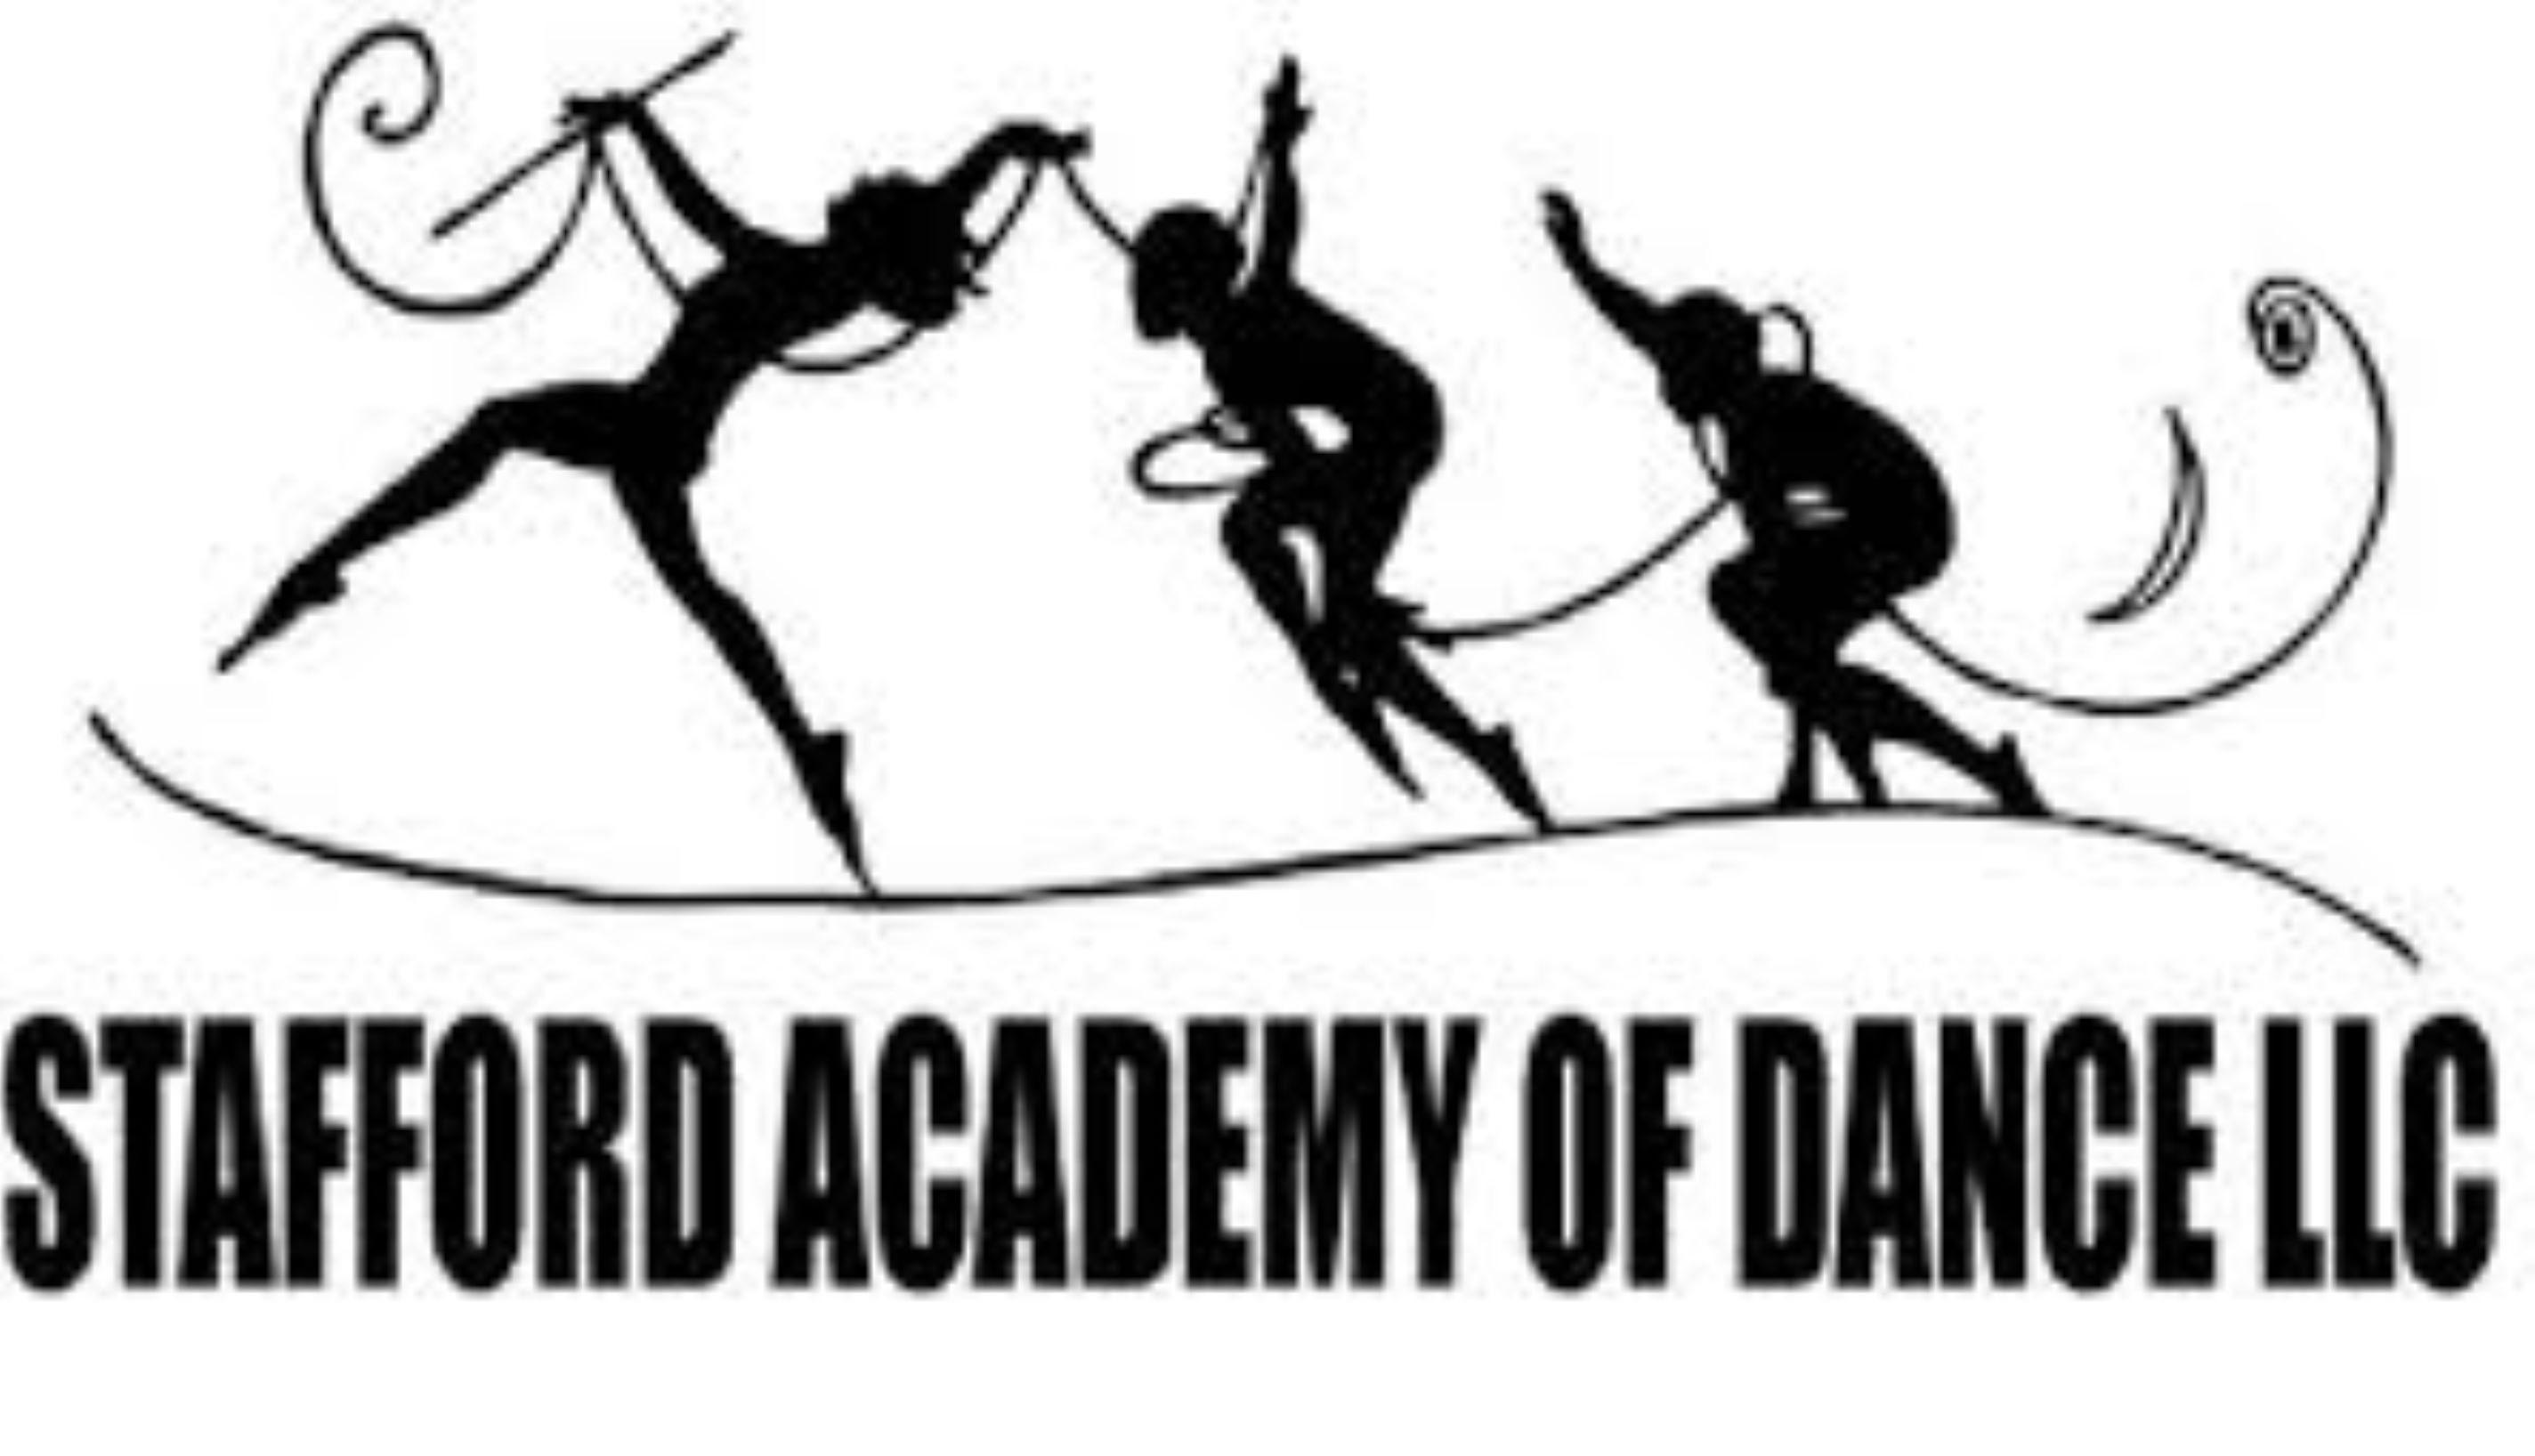 Stafford Academy of Dance